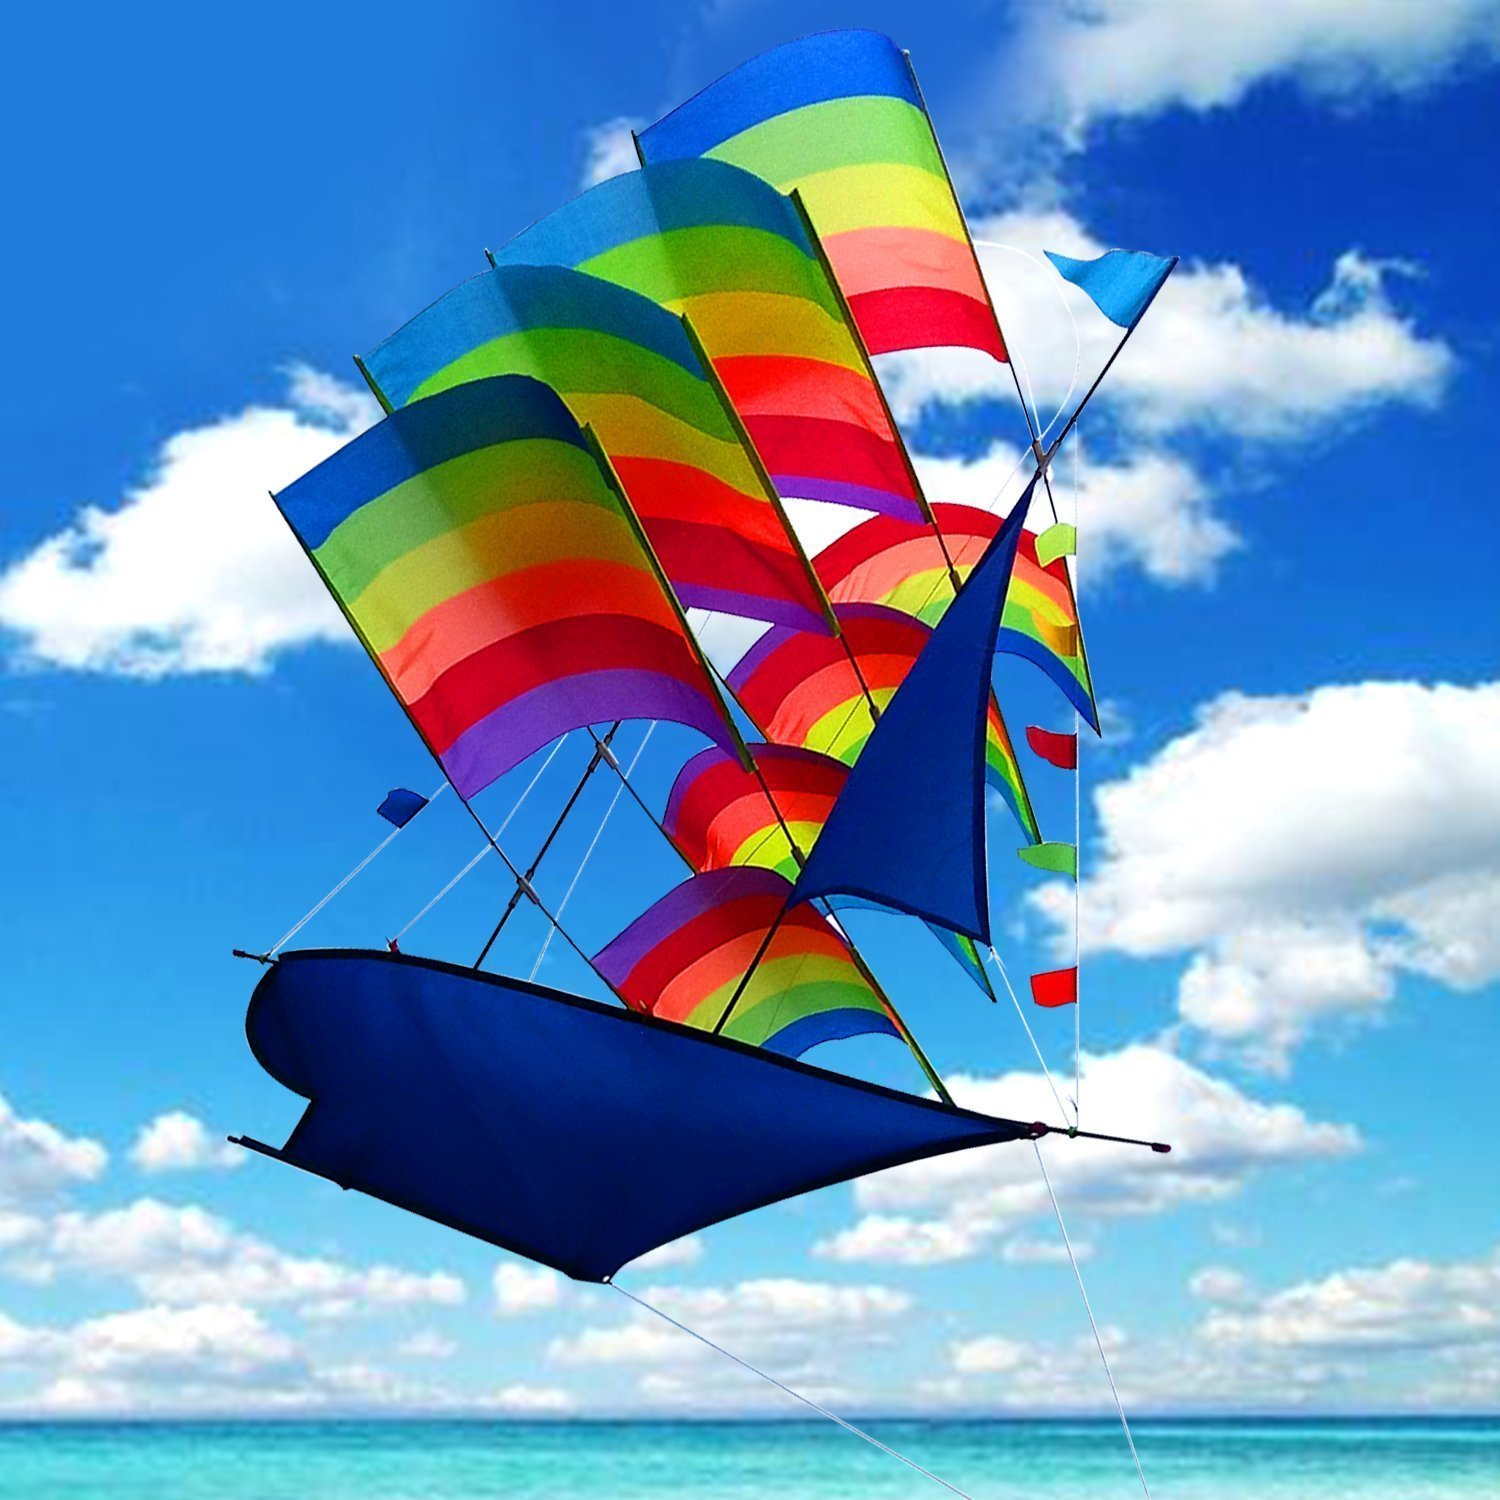 Tresbro Sailing Ship Kite Fly 37 inch, 3D Cool Huge China Kites for Kids and Adults, Awesome Rainbow Kites for Outdoor Travel Beach by Tresbro